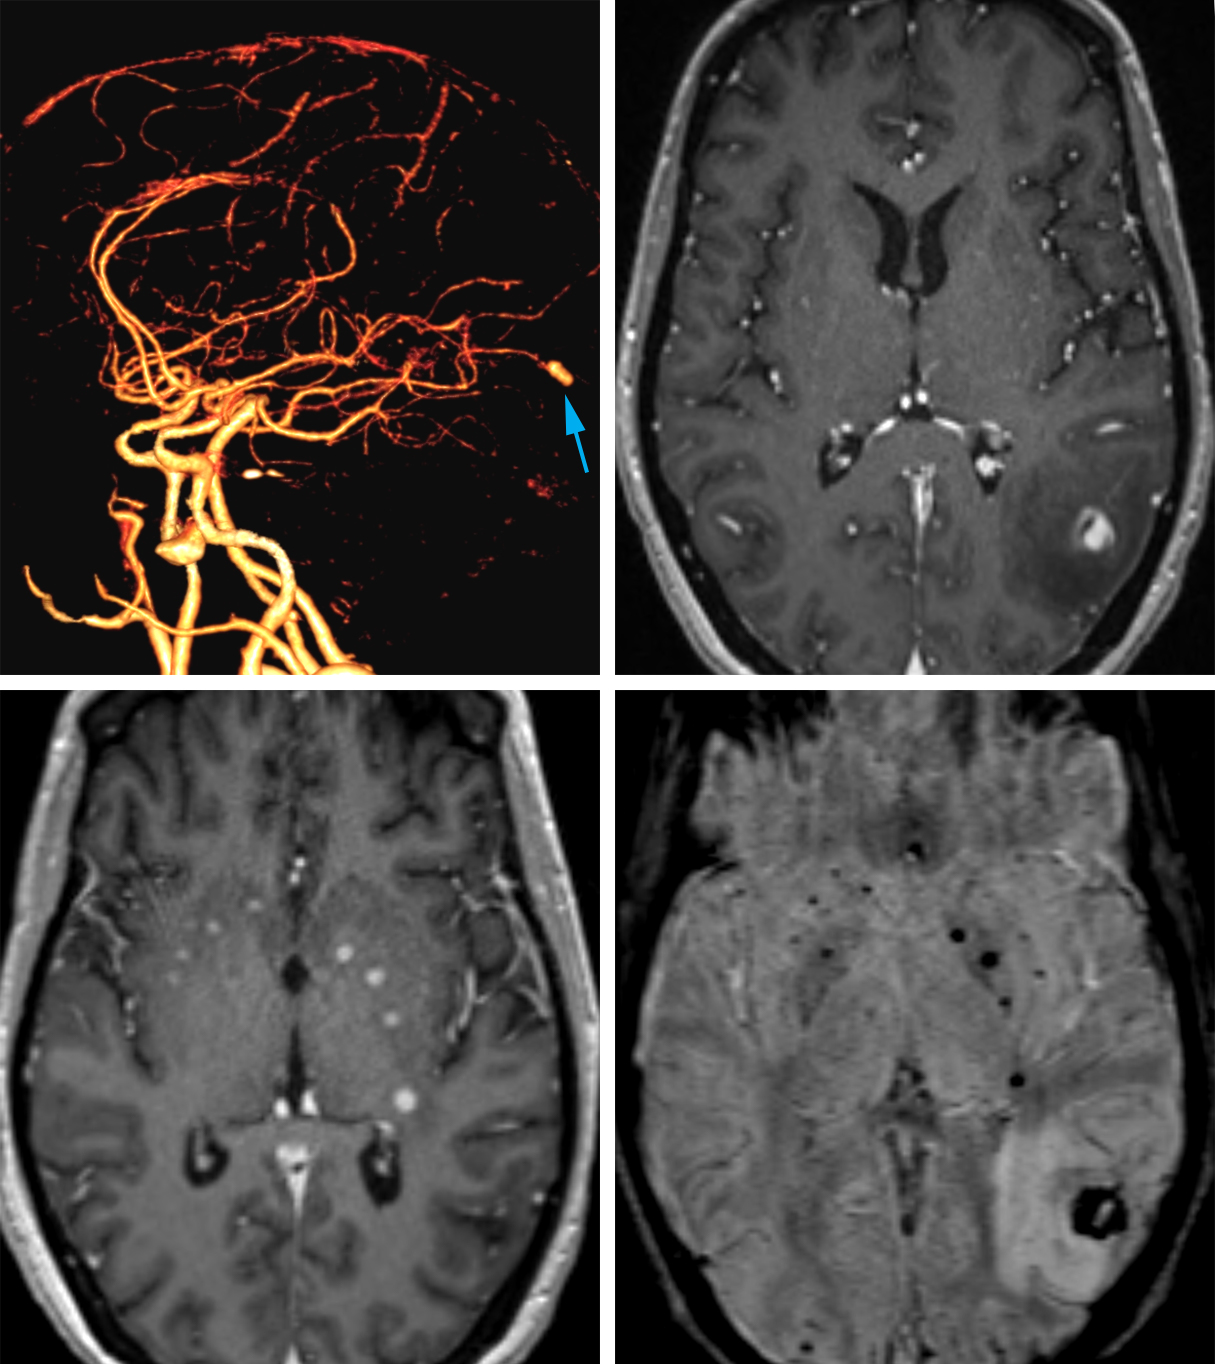 Figure 9: Mycotic Aneurysm – The 3-D reformatted CT Angiography (top row left) shows an aneurysm in an unusual location arising from the distal posterior cerebral artery (arrow). The contrast-enhanced T1-weighted MRI (top row right) also demonstrates the location of this enhancing aneurysm in the lateral left occipital lobe with surrounding hypointense edema. More inferiorly, contrast-enhanced MRI (bottom row left) also shows several small enhancing abscesses in and around the basal ganglia, often arising contemporaneously with mycotic aneurysms due to their shared etiology. These lesions are often associated with hemorrhage, as demonstrated by the low signal intensity areas on SWI MR image (bottom row right).